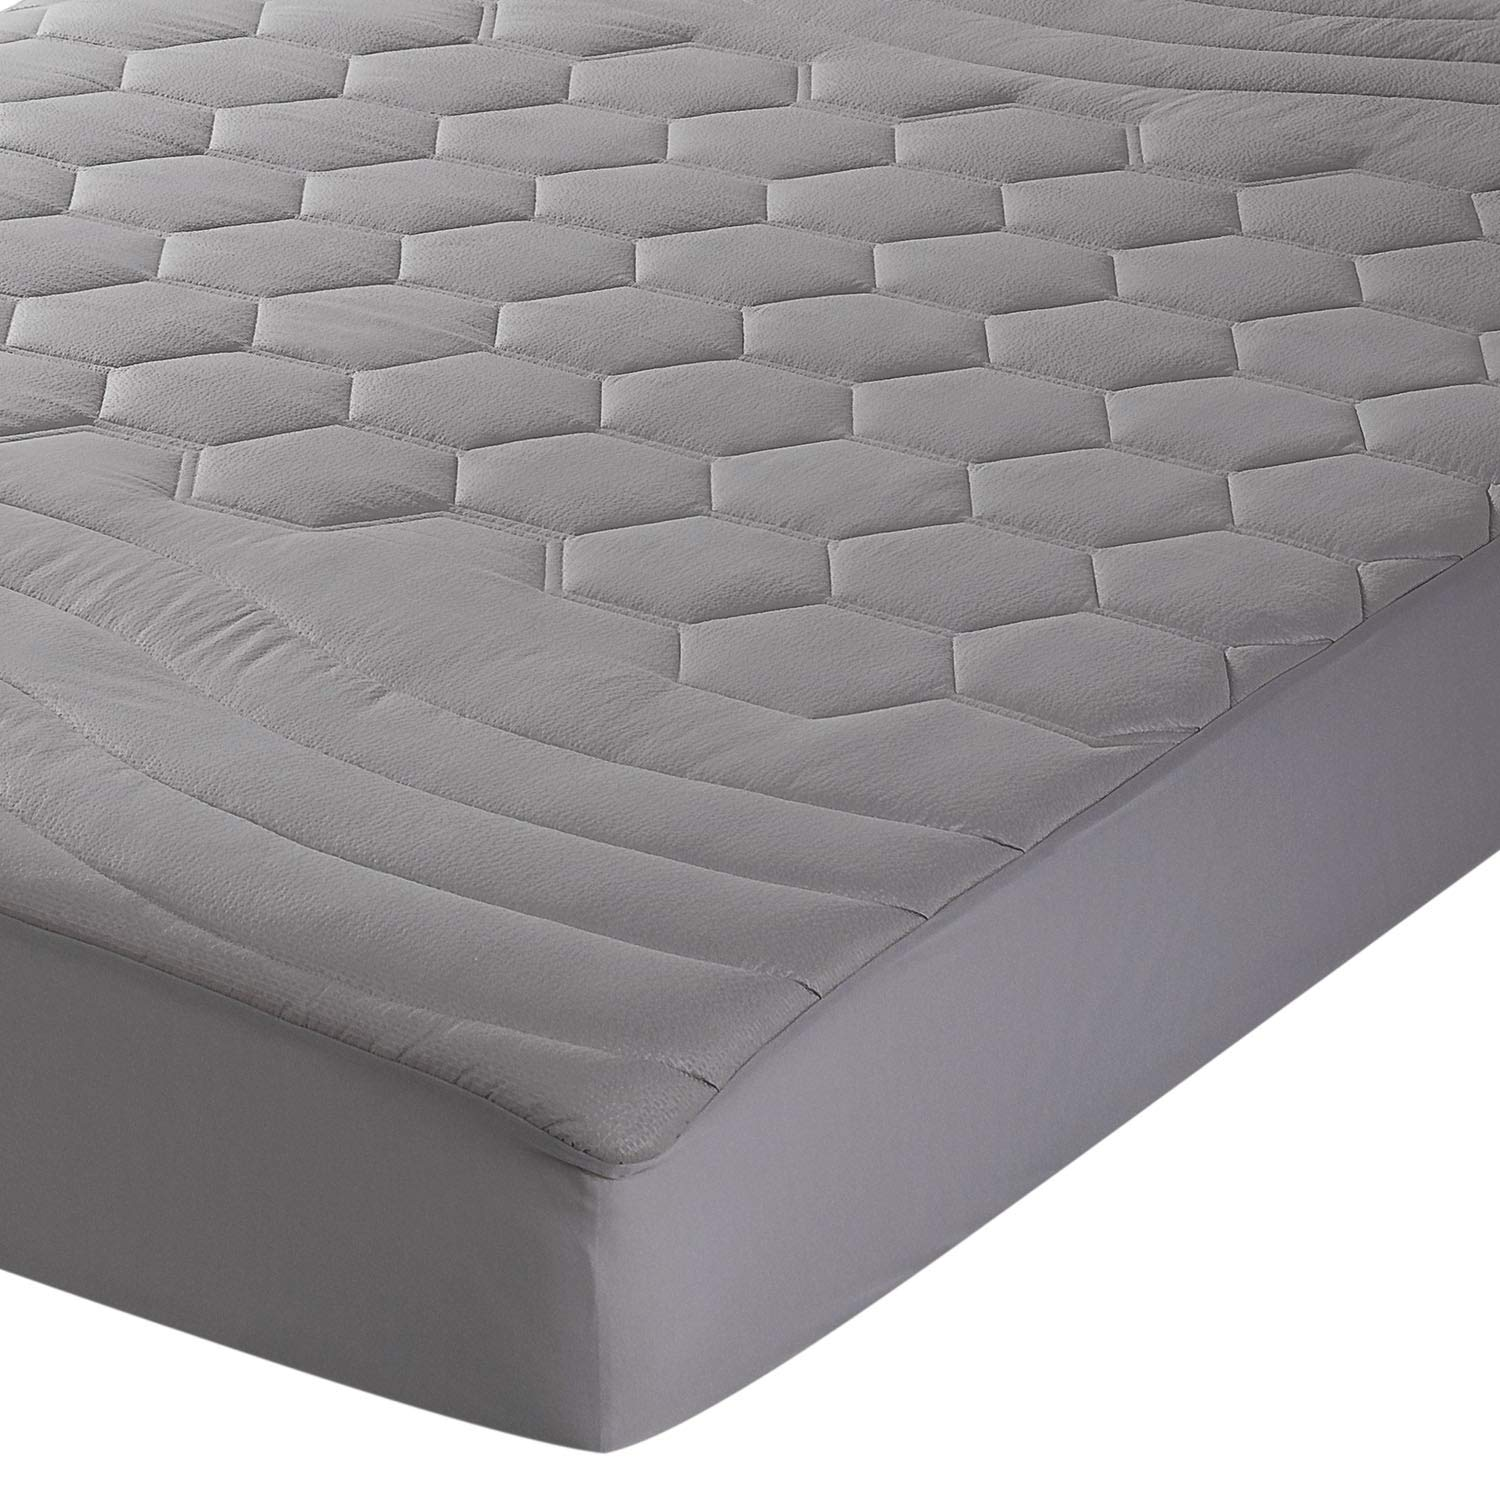 Bedsure Mattress Pad Twin Size Hypoallergenic - Antibacterial, Breathable - Ultra Soft Quilted Mattress Protector, Fitted Sheet Mattress Cover White FBA_BA601E1BW4TW